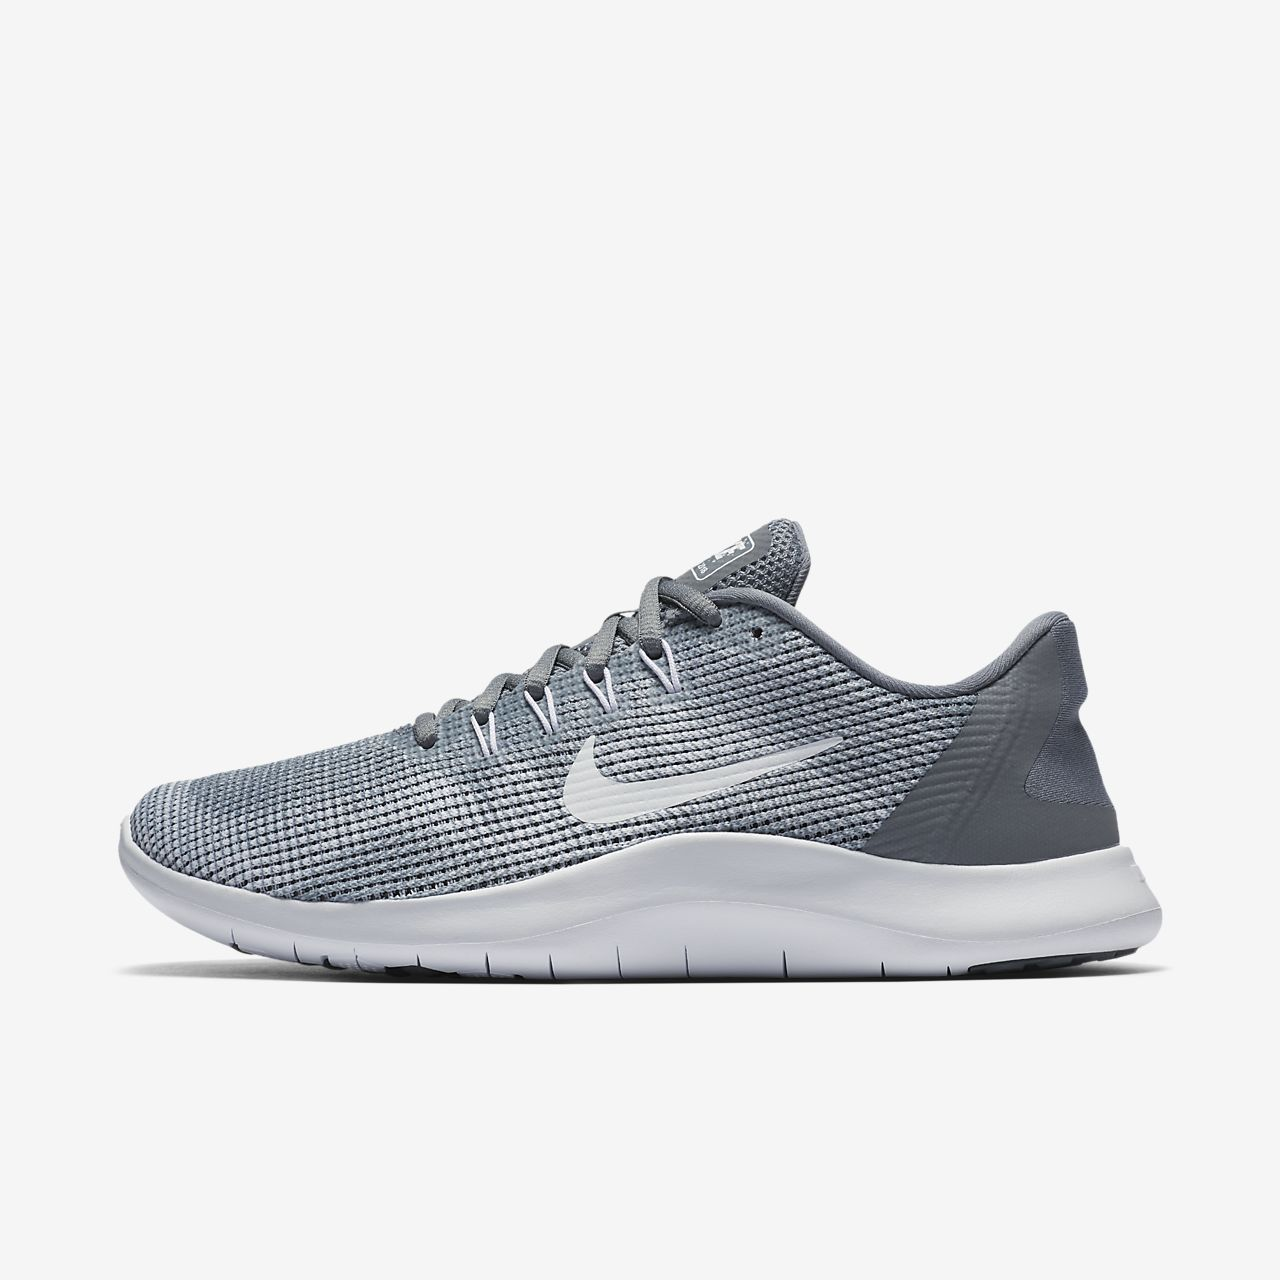 6823793bb1ef Nike Flex RN 2018 Women s Running Shoe. Nike.com